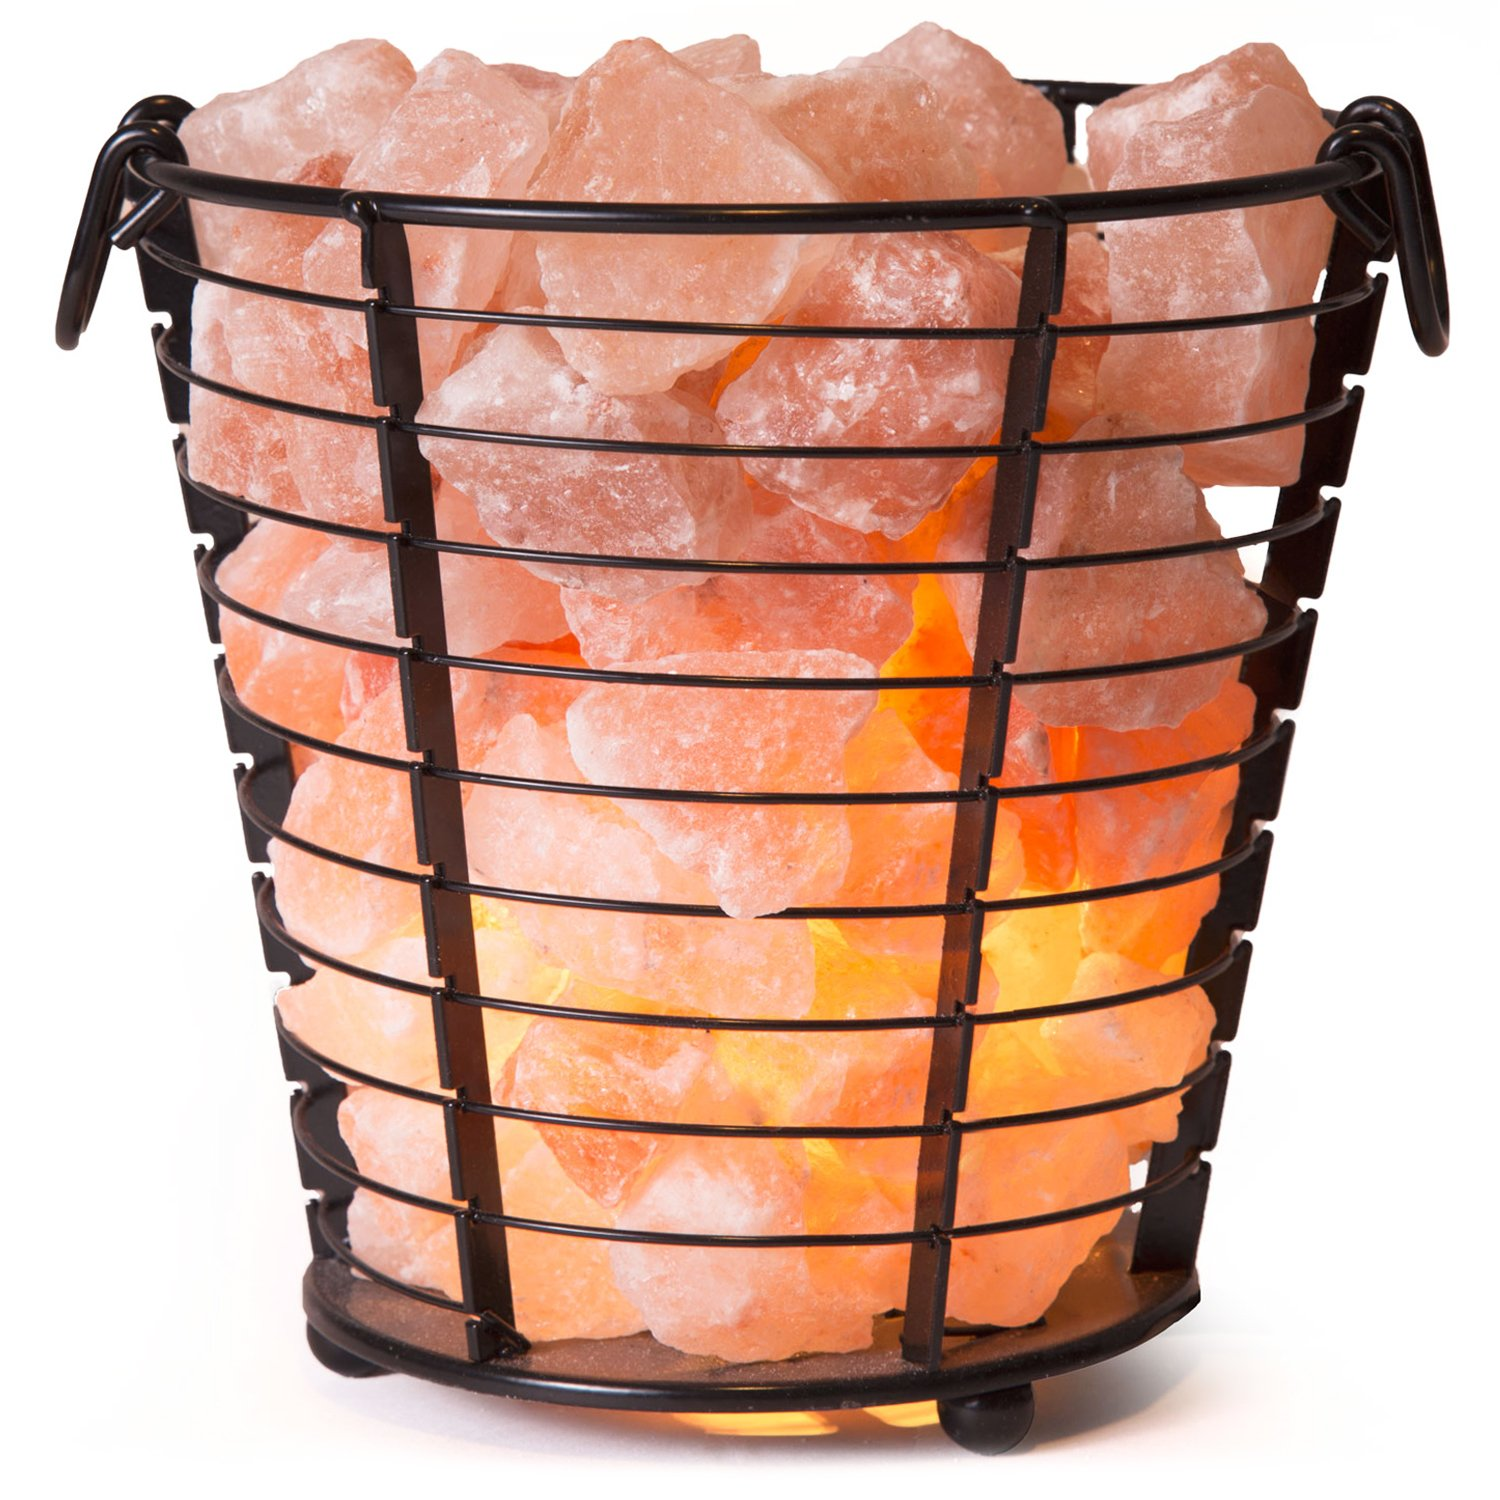 Crystal Allies Natural Himalayan Salt Wire Mesh Basket Vase Lamp with Cord, Light Bulb & Authentic Crystal Allies Info Card - Choose Your Pattern (Beacon)